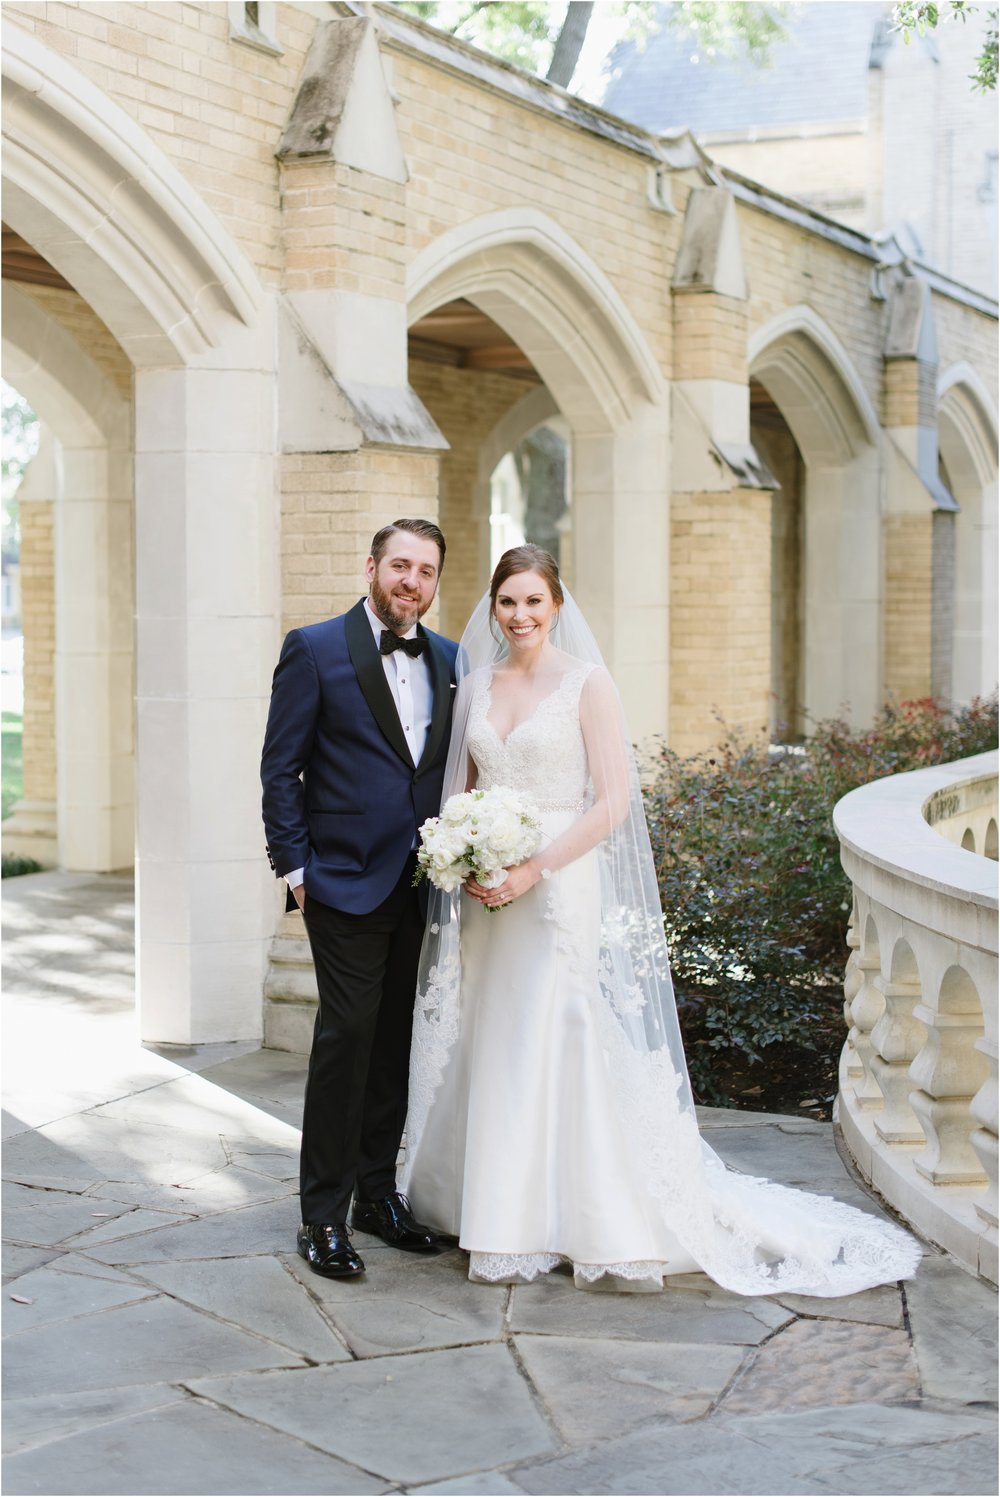 dallasweddingphotographer_RoomonMain_HPUMCWedding-MattandJulieWeddings_0012.jpg